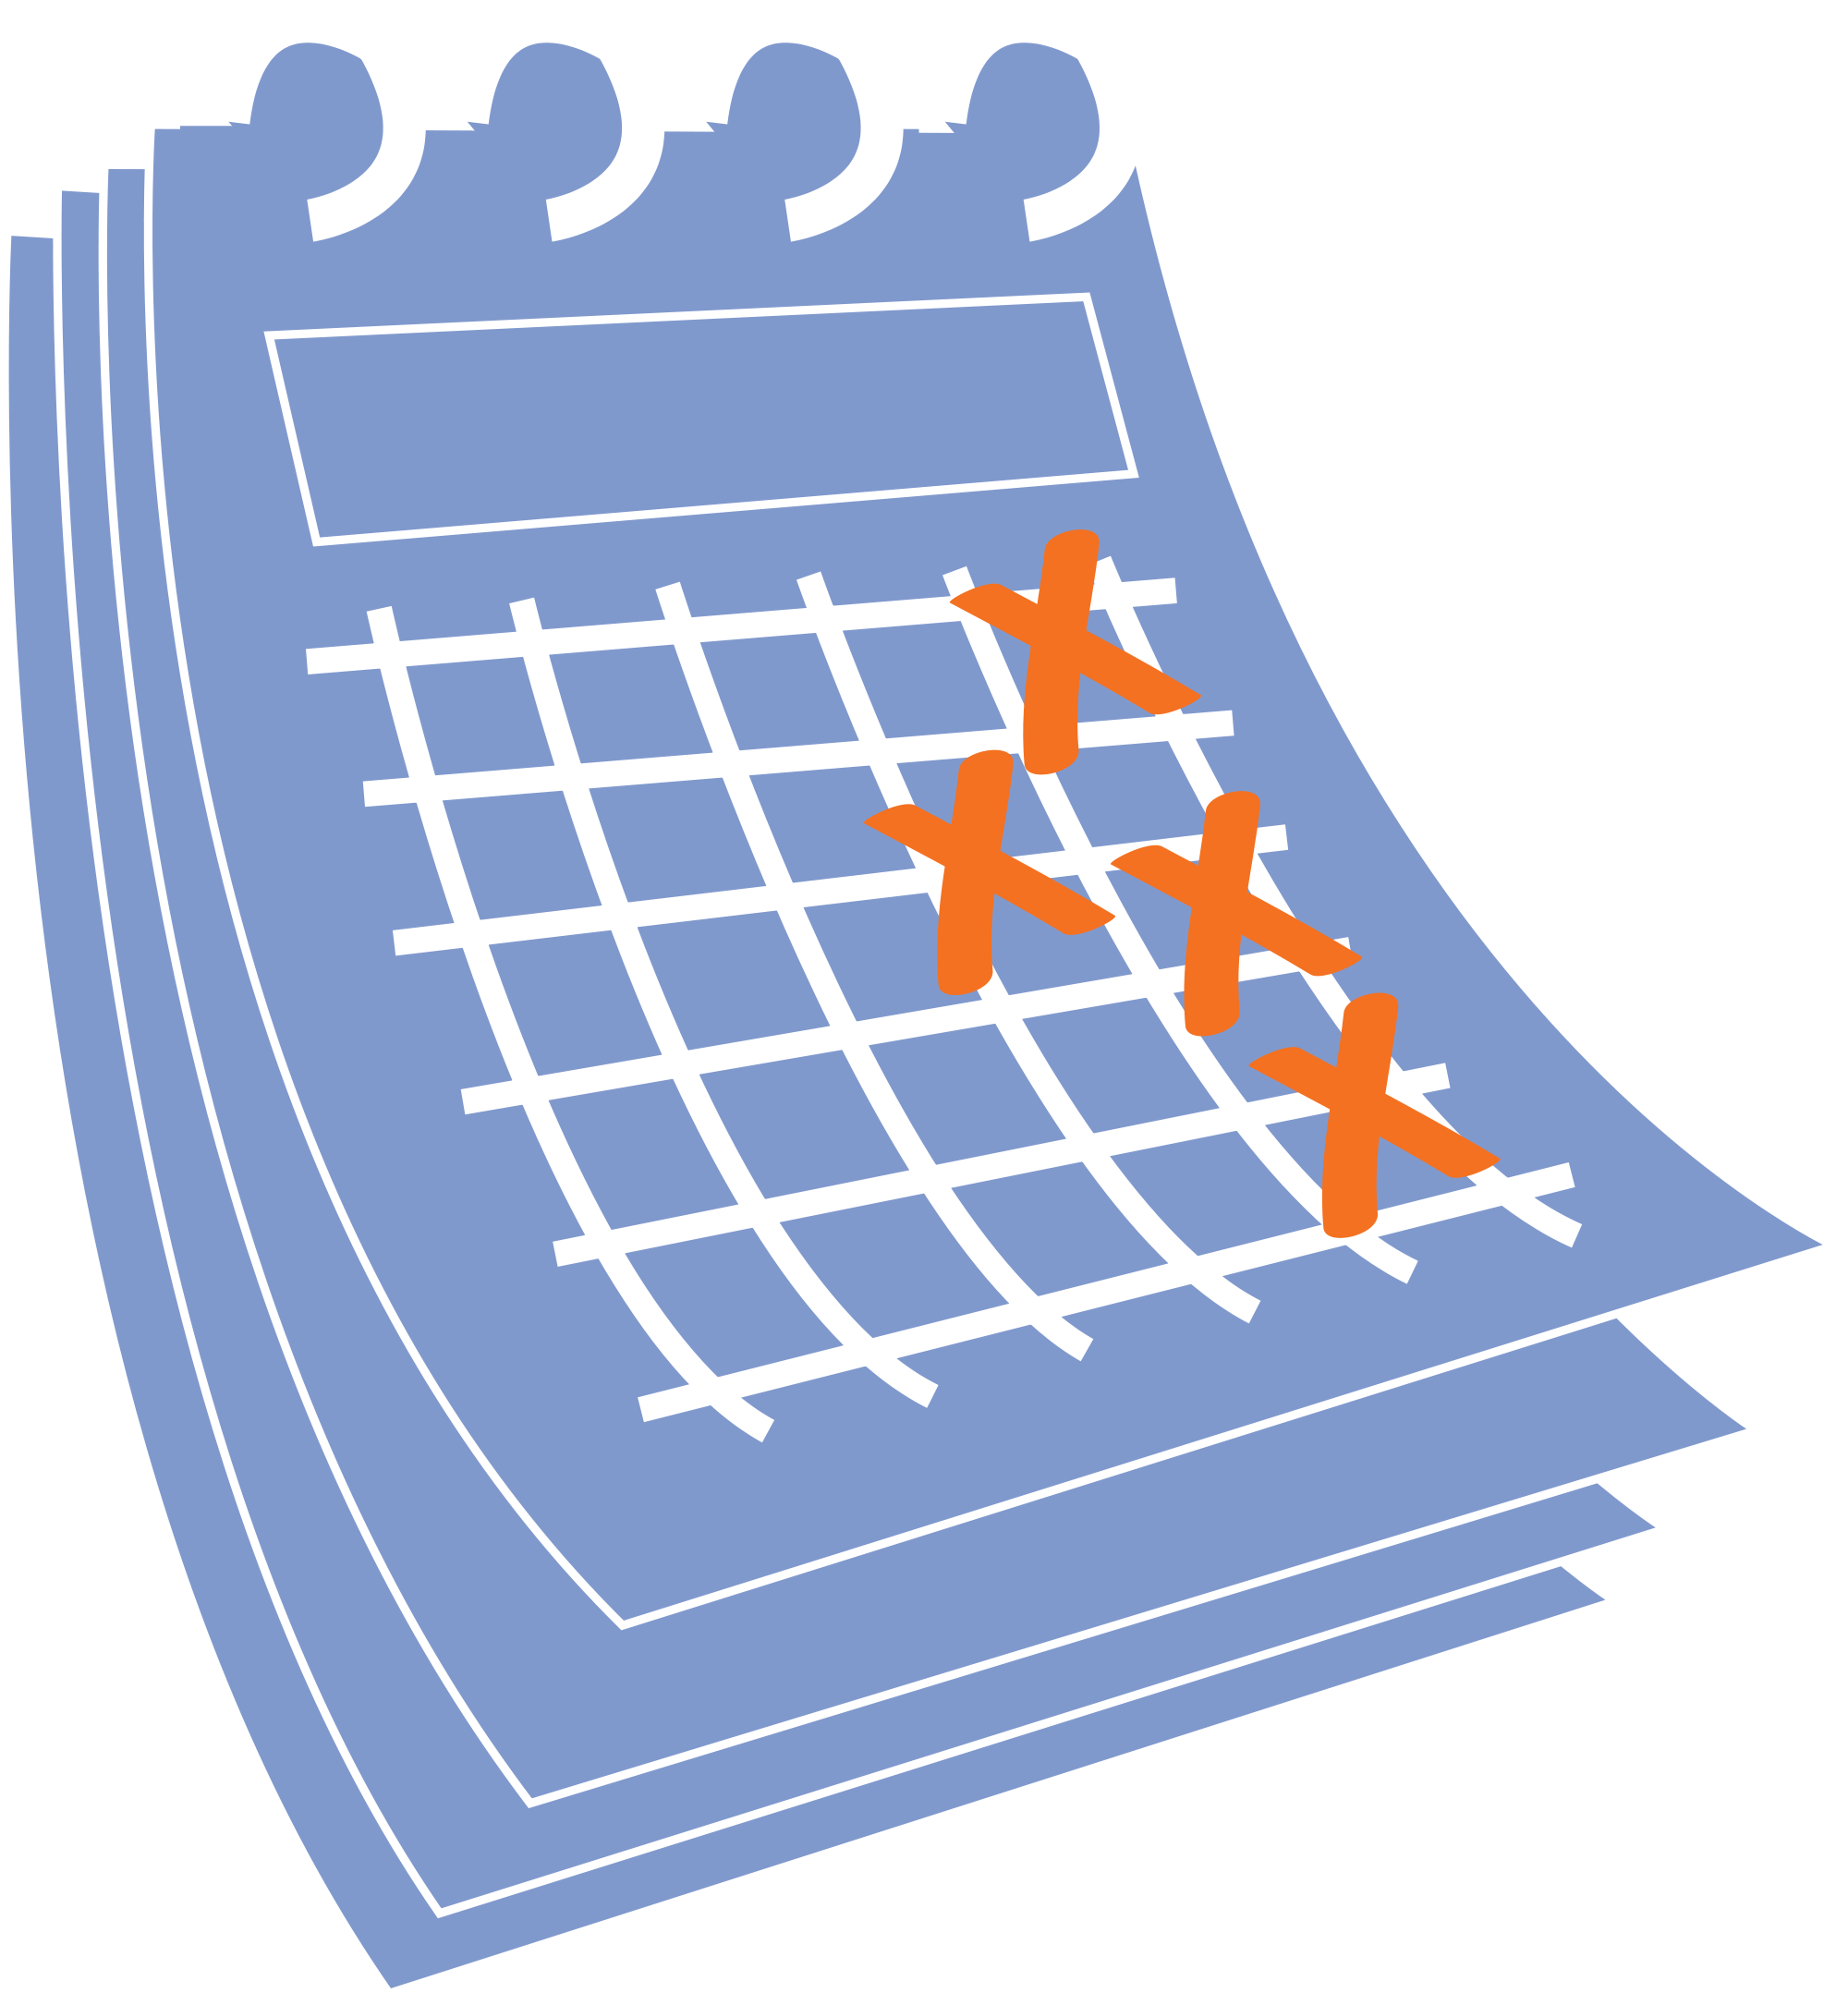 2000px-Blue_calendar_icon_with_dates_crossed_out